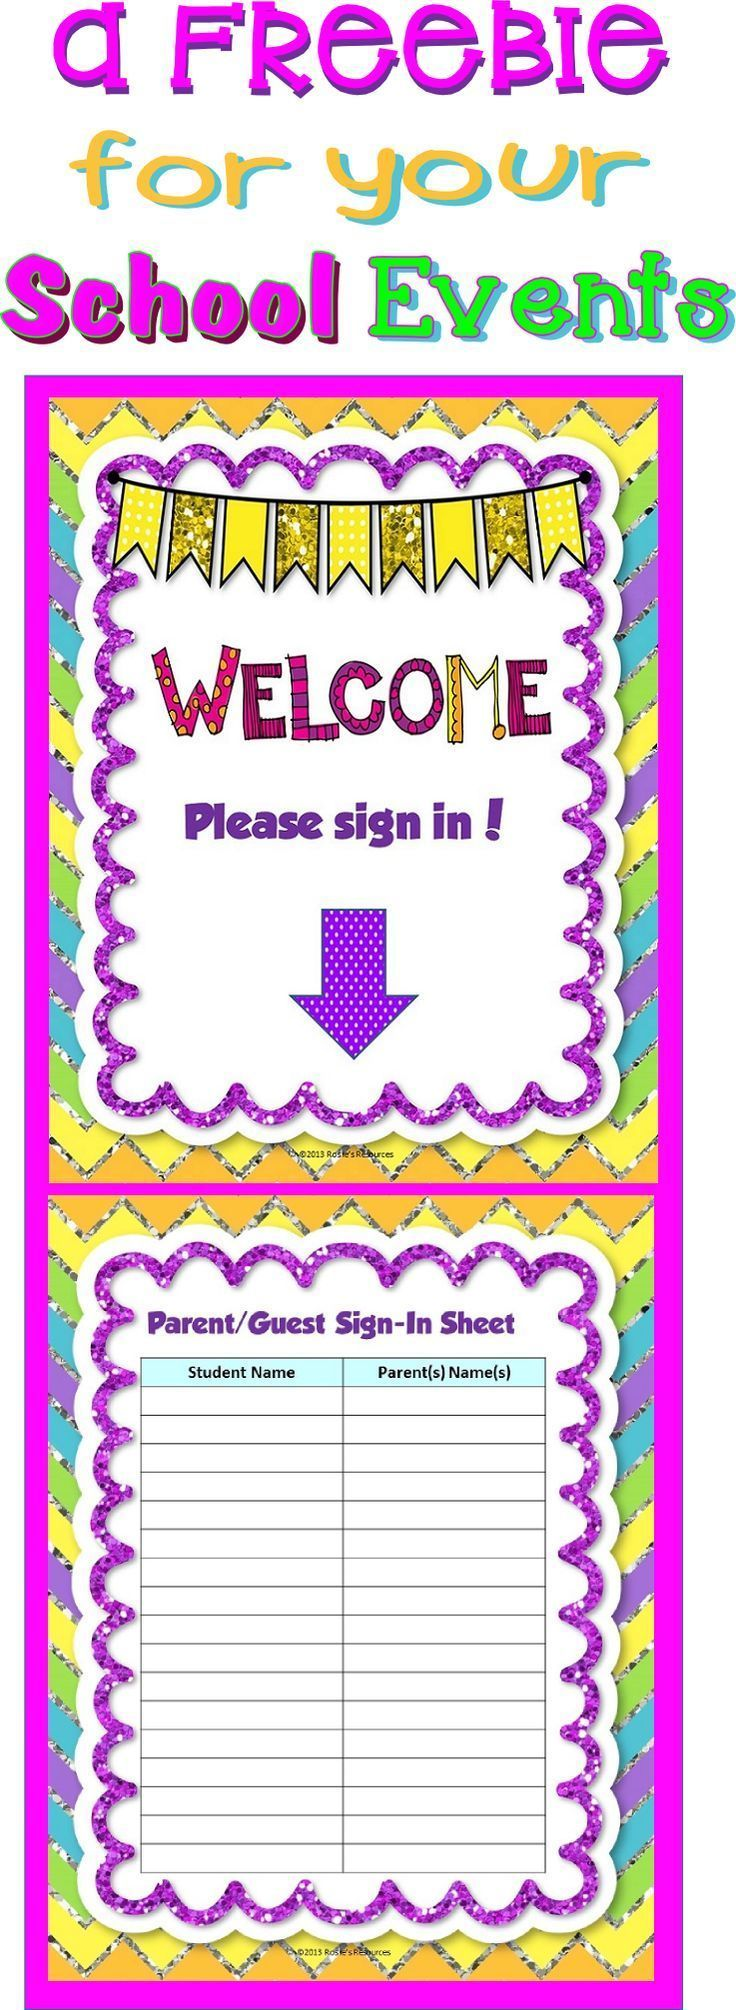 Have A Cute SignIn Sheet Ready For All Your School Events Free